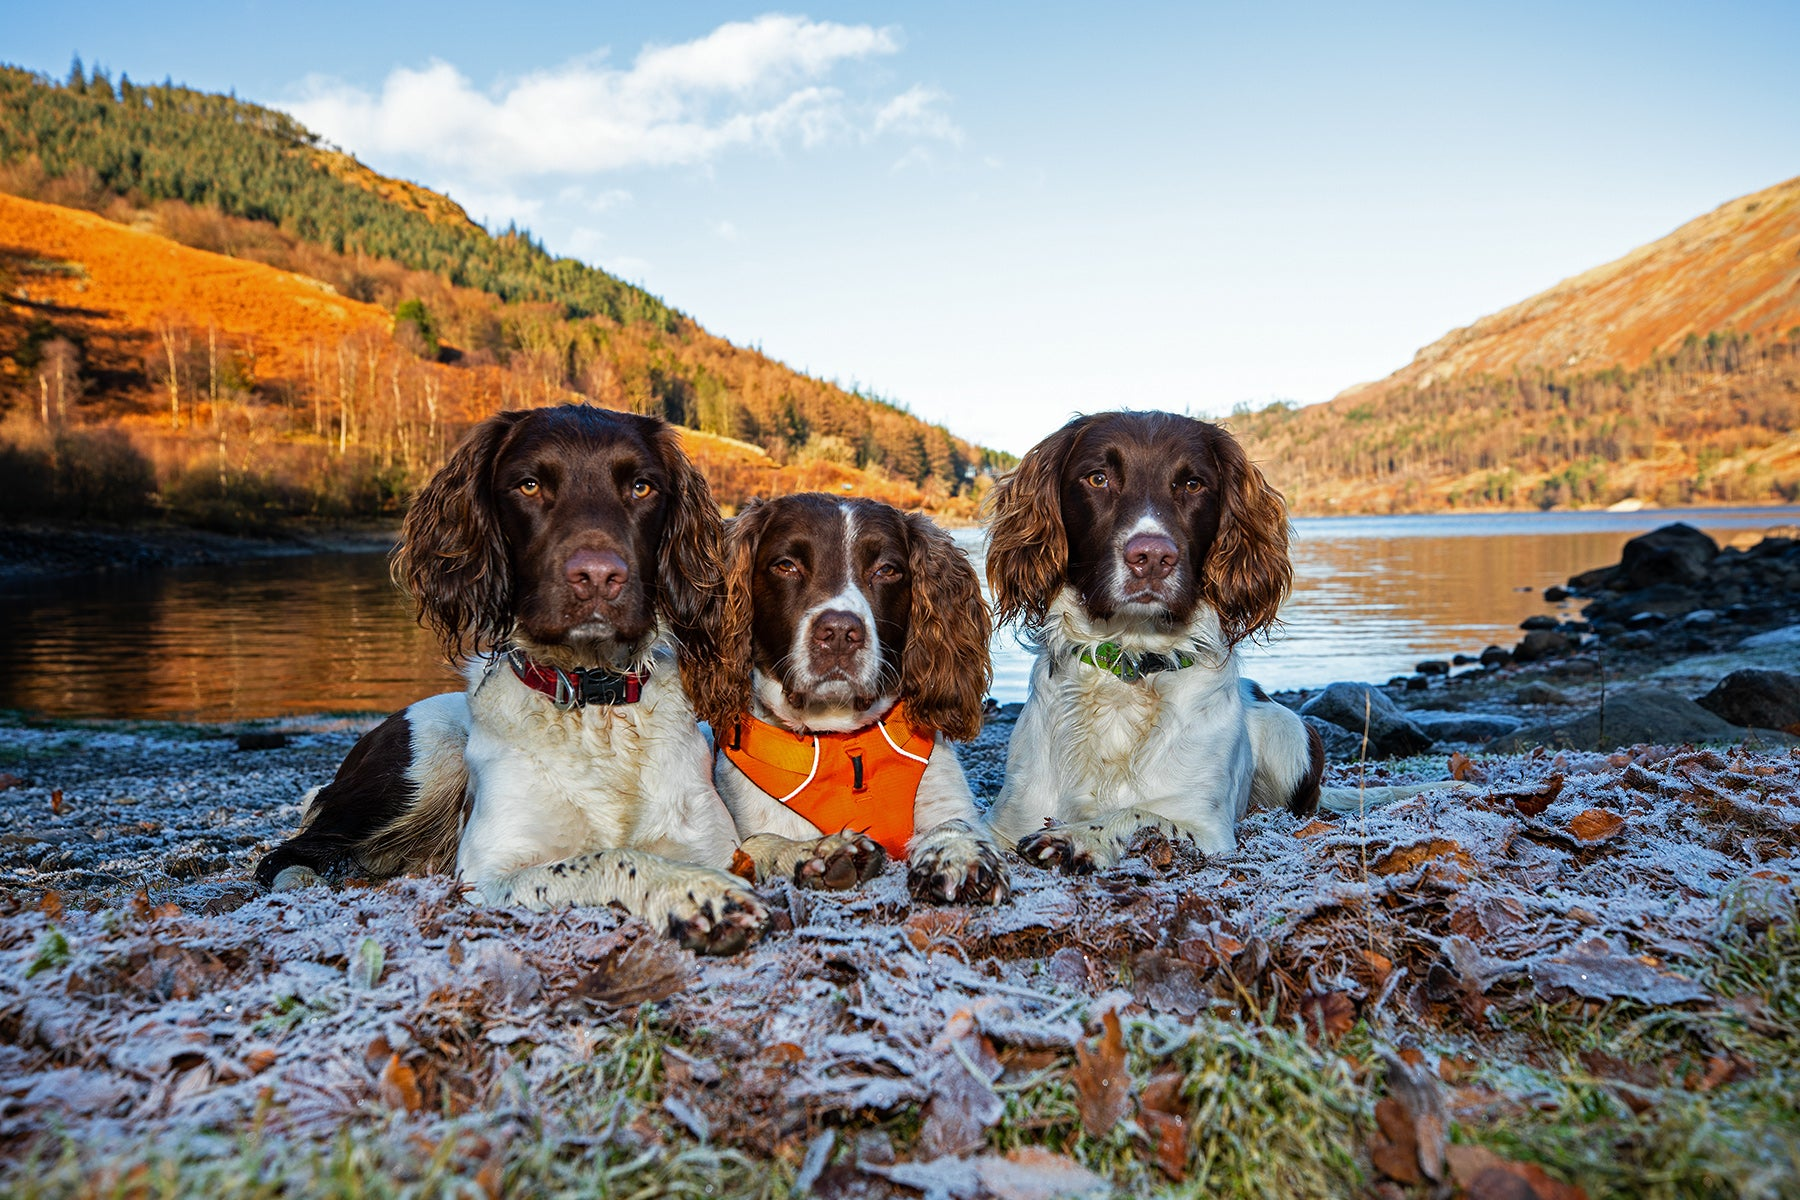 Kerry's three dogs stare into the camera laying side by side next to a lake.